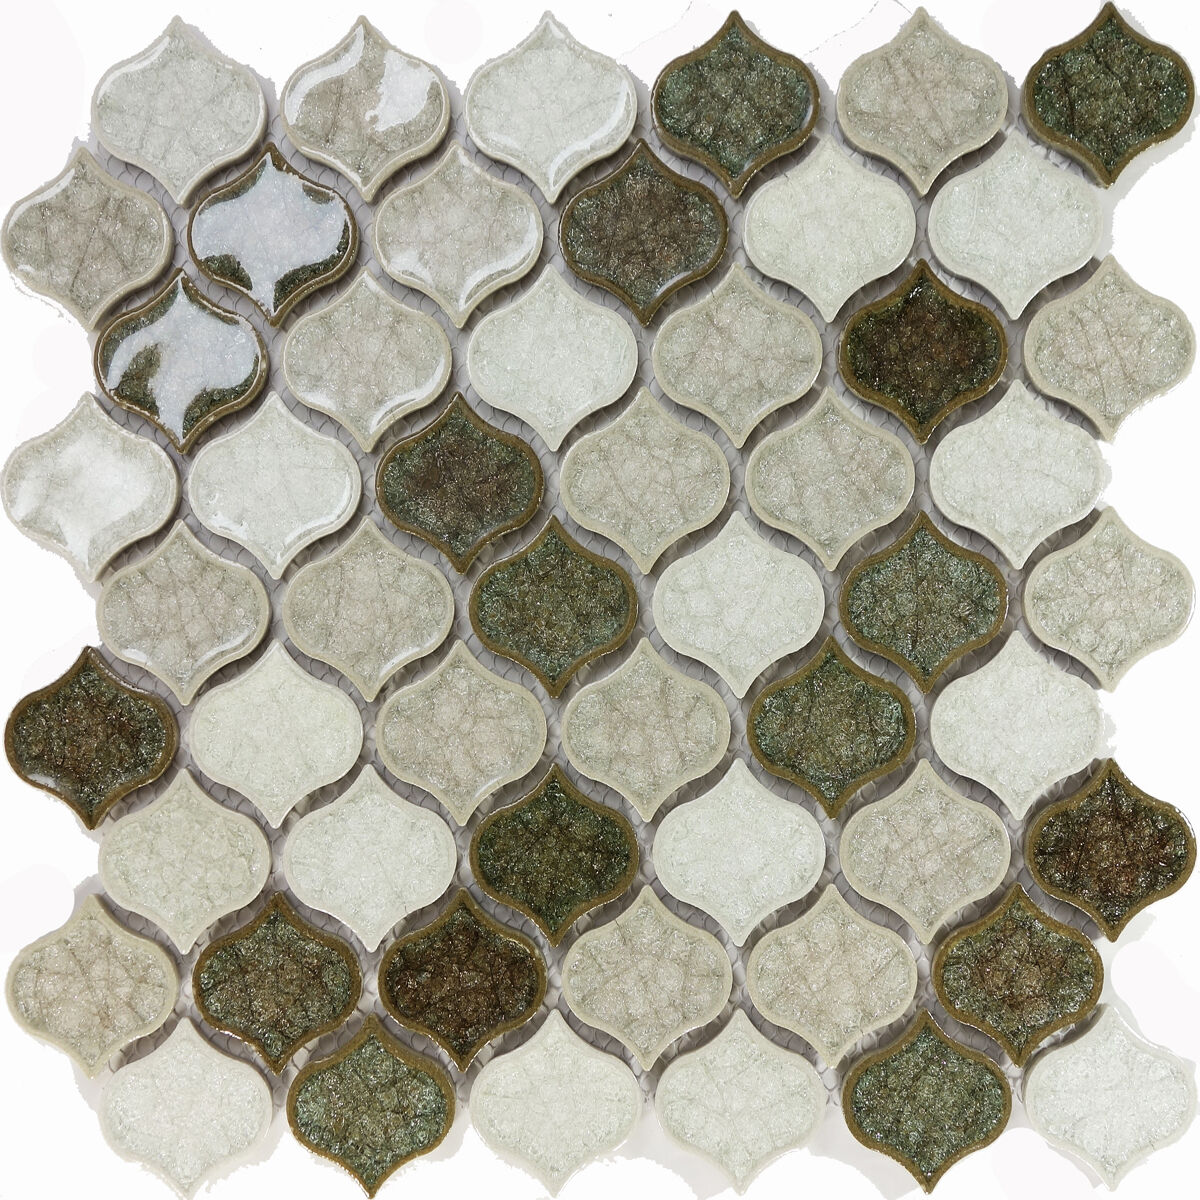 SAMPLE Green White Crackle Glass Pattern Blend Mosaic Tile